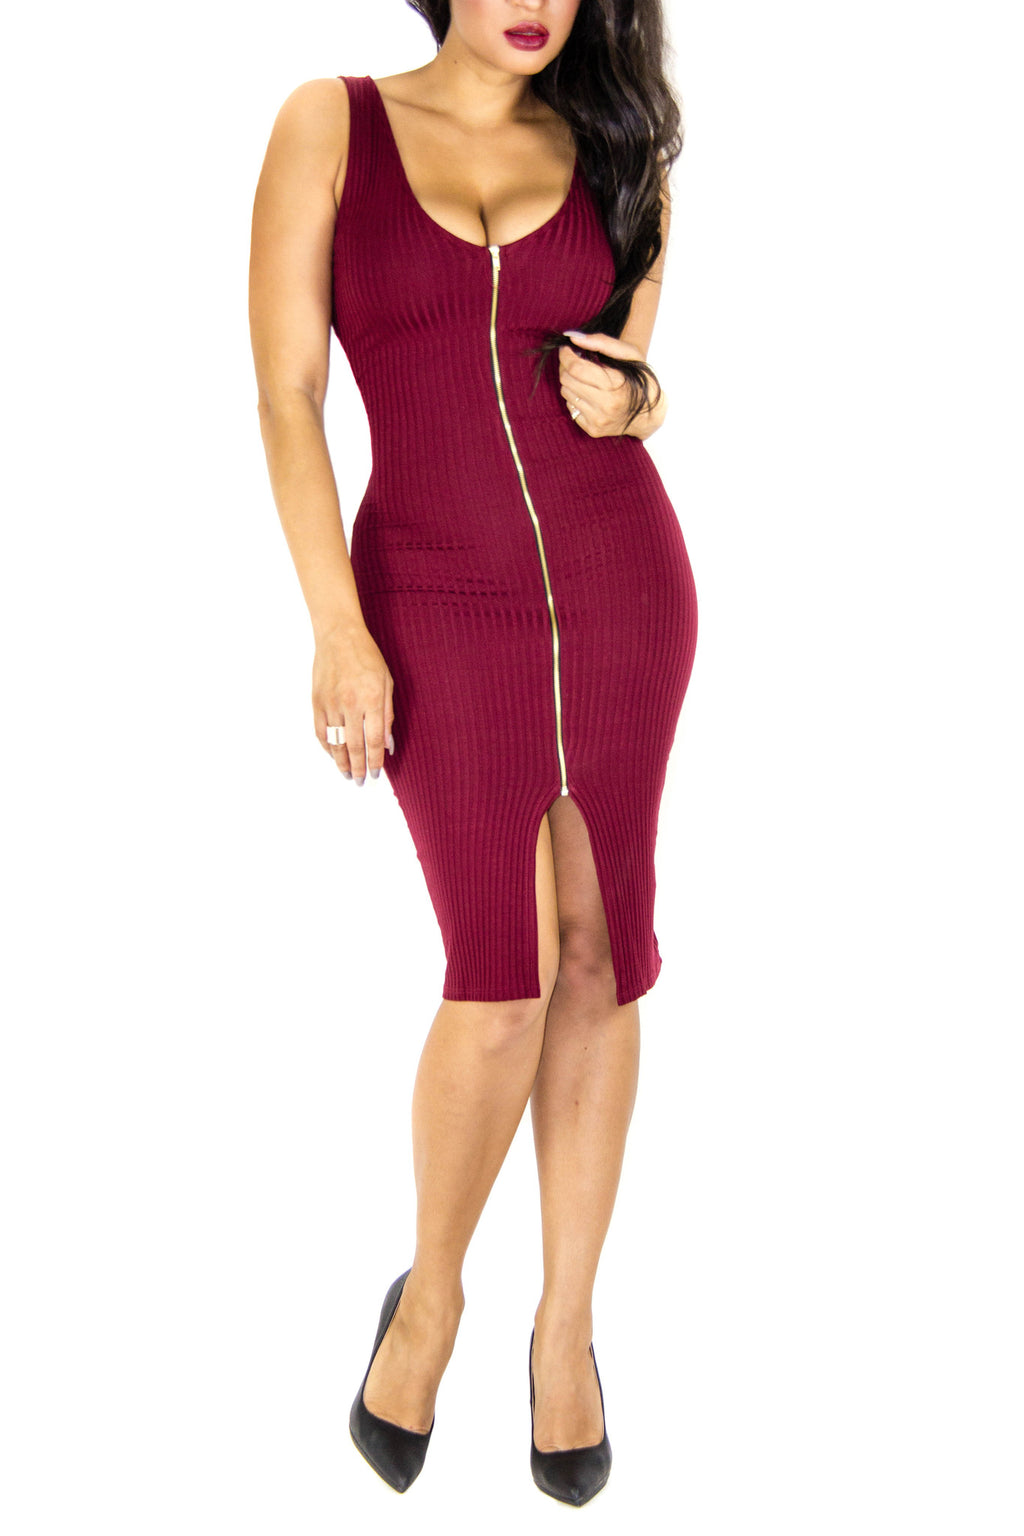 Shayla Berry Dress, Dress - Style Dirty